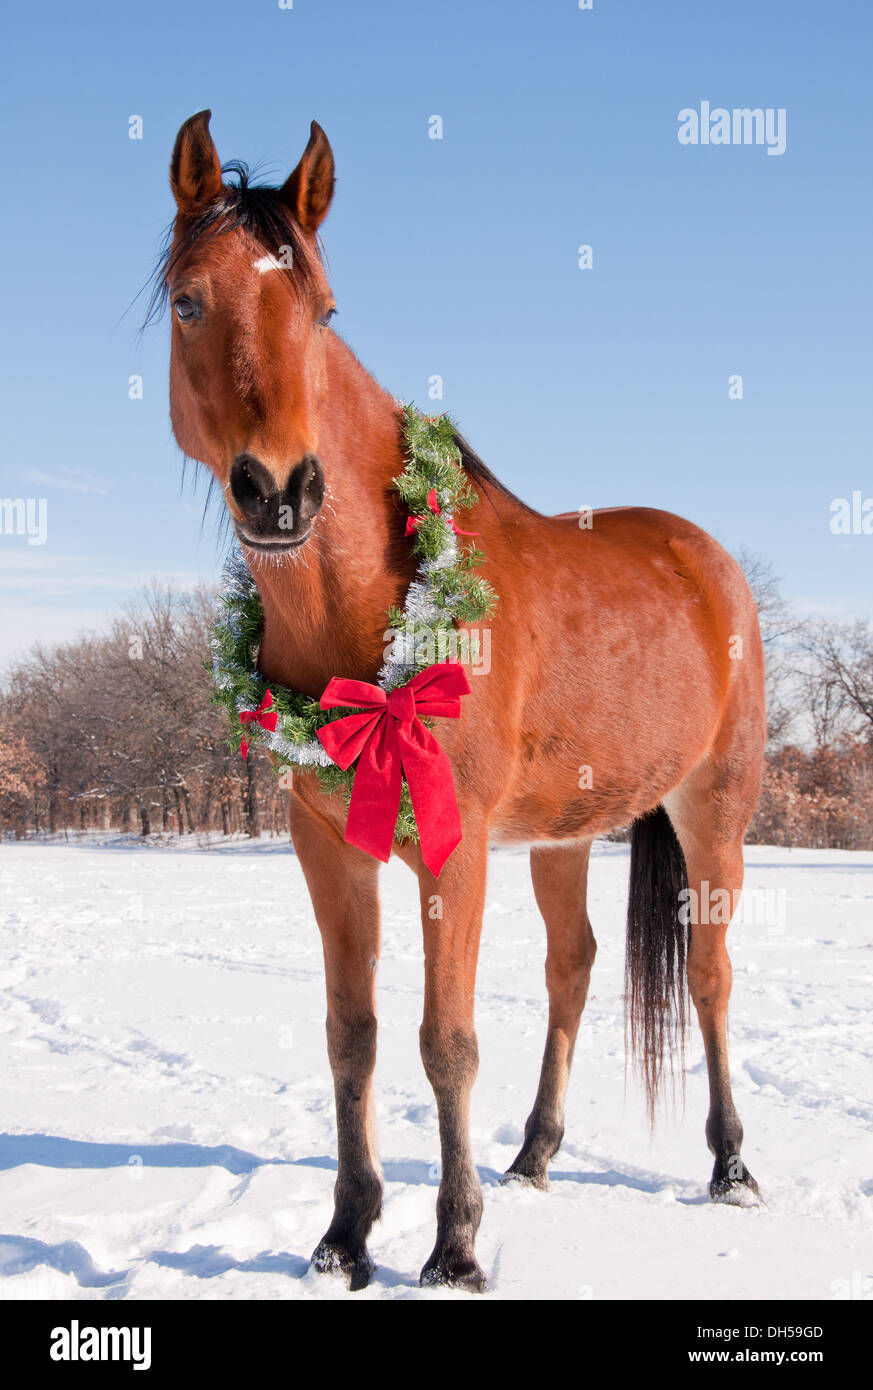 Bay Arabian horse in snow with a Christmas wreath around his neck - concept of gift horse - Stock Image